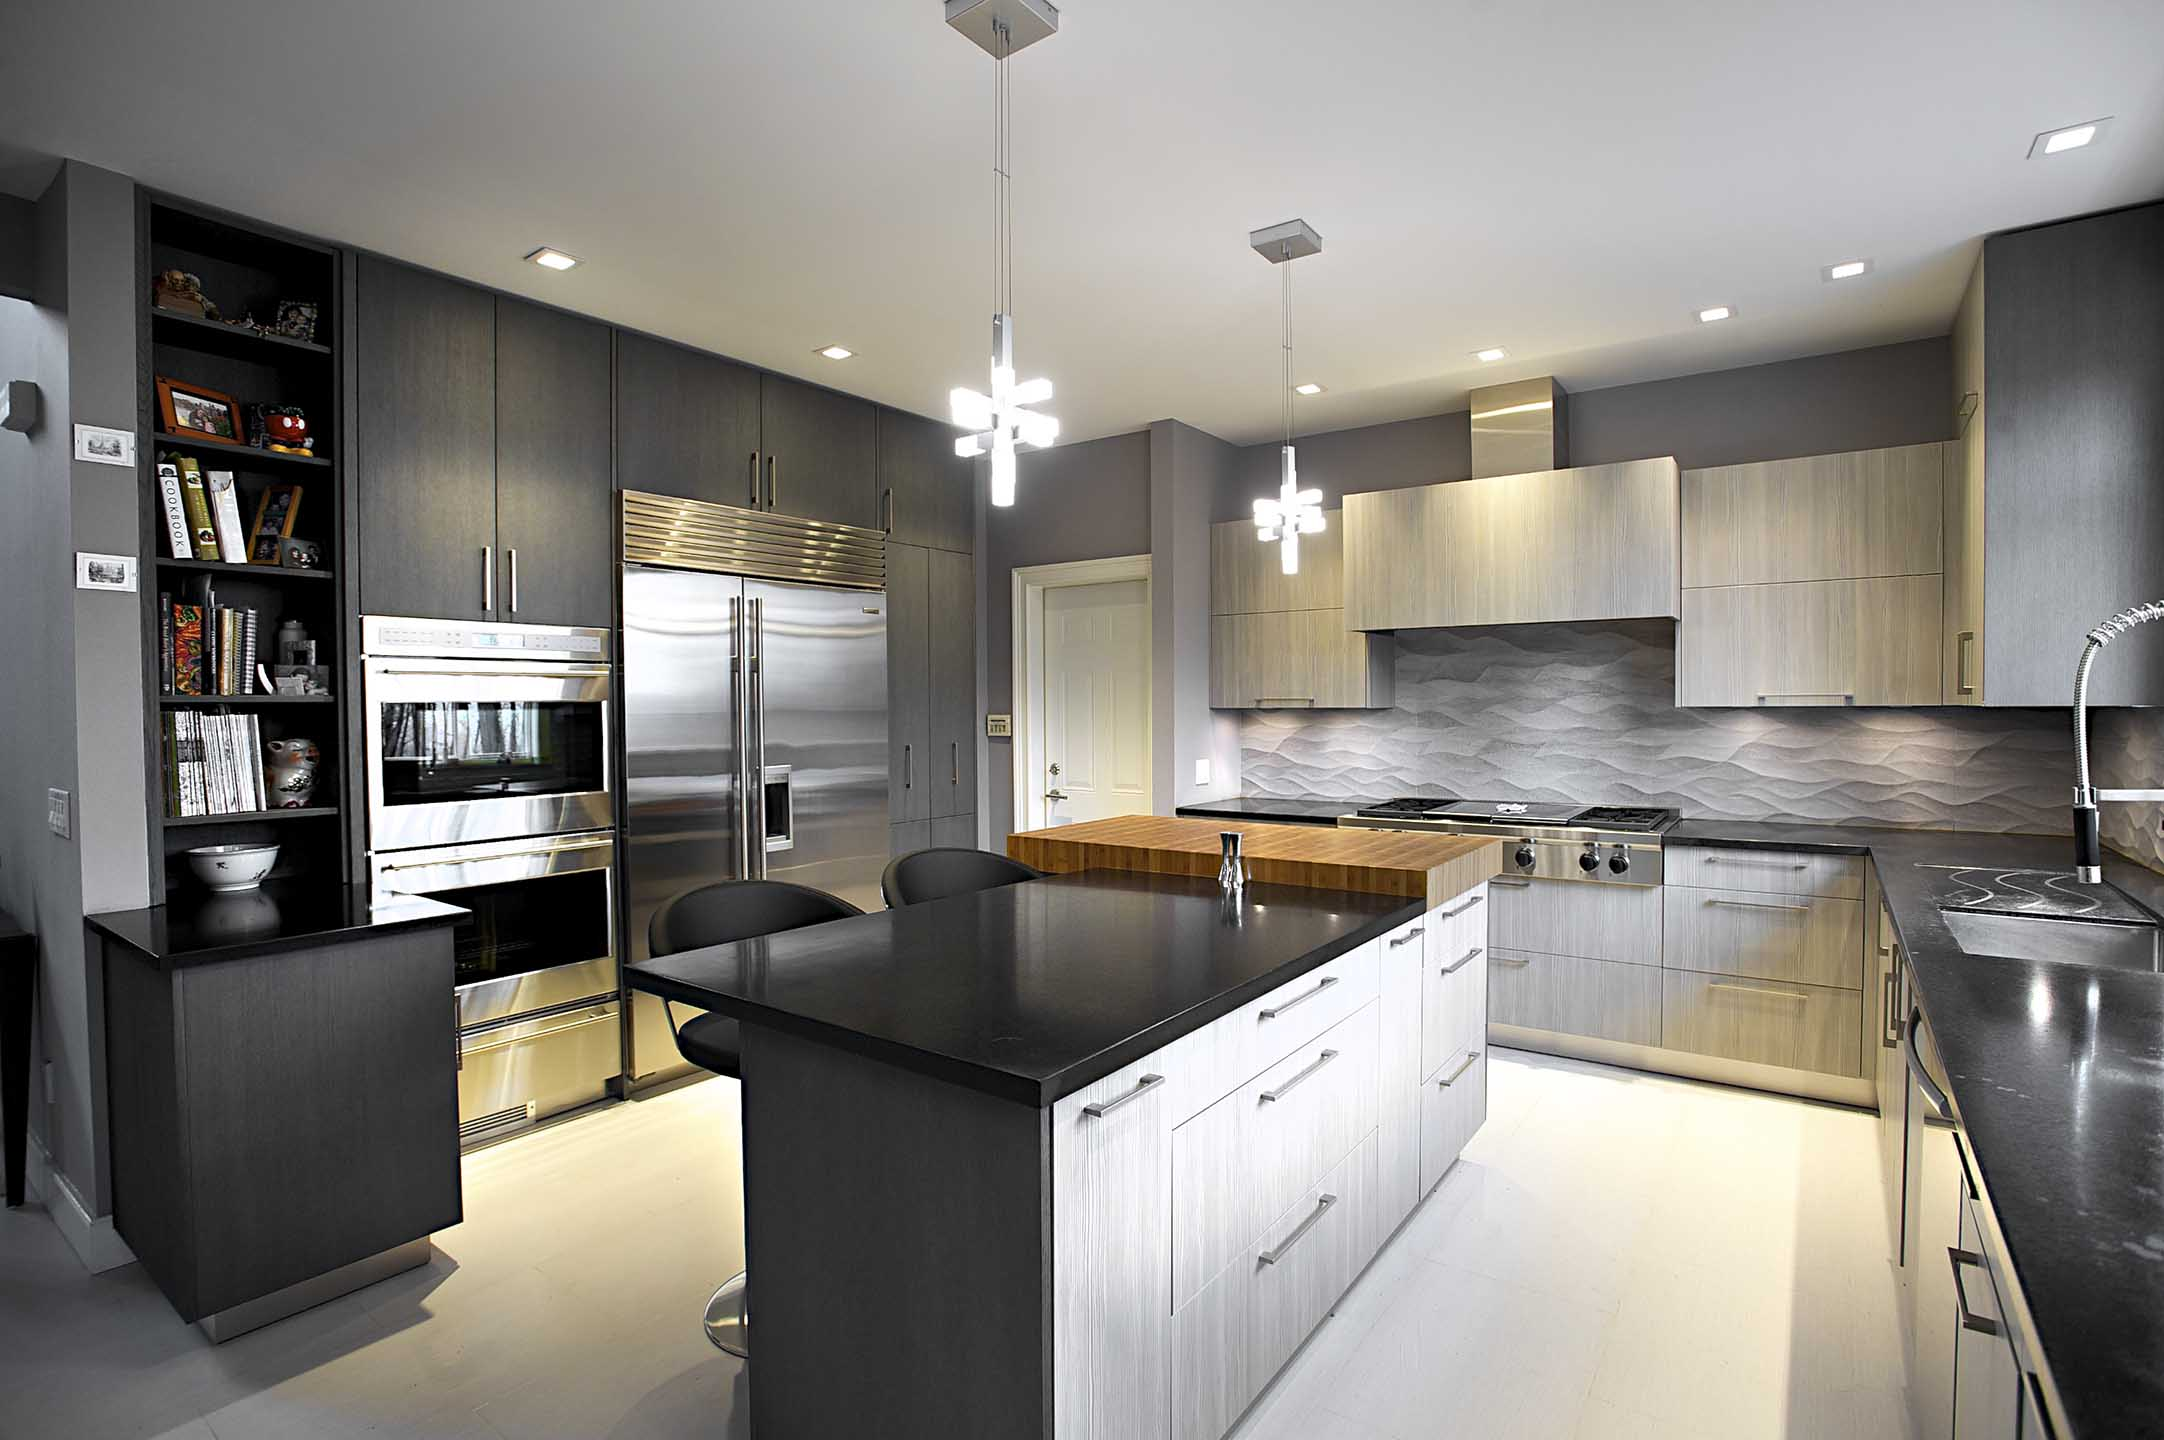 contemporary indoor kitchen design by joan bigg kitchen design westchester ny and fairfield county ct